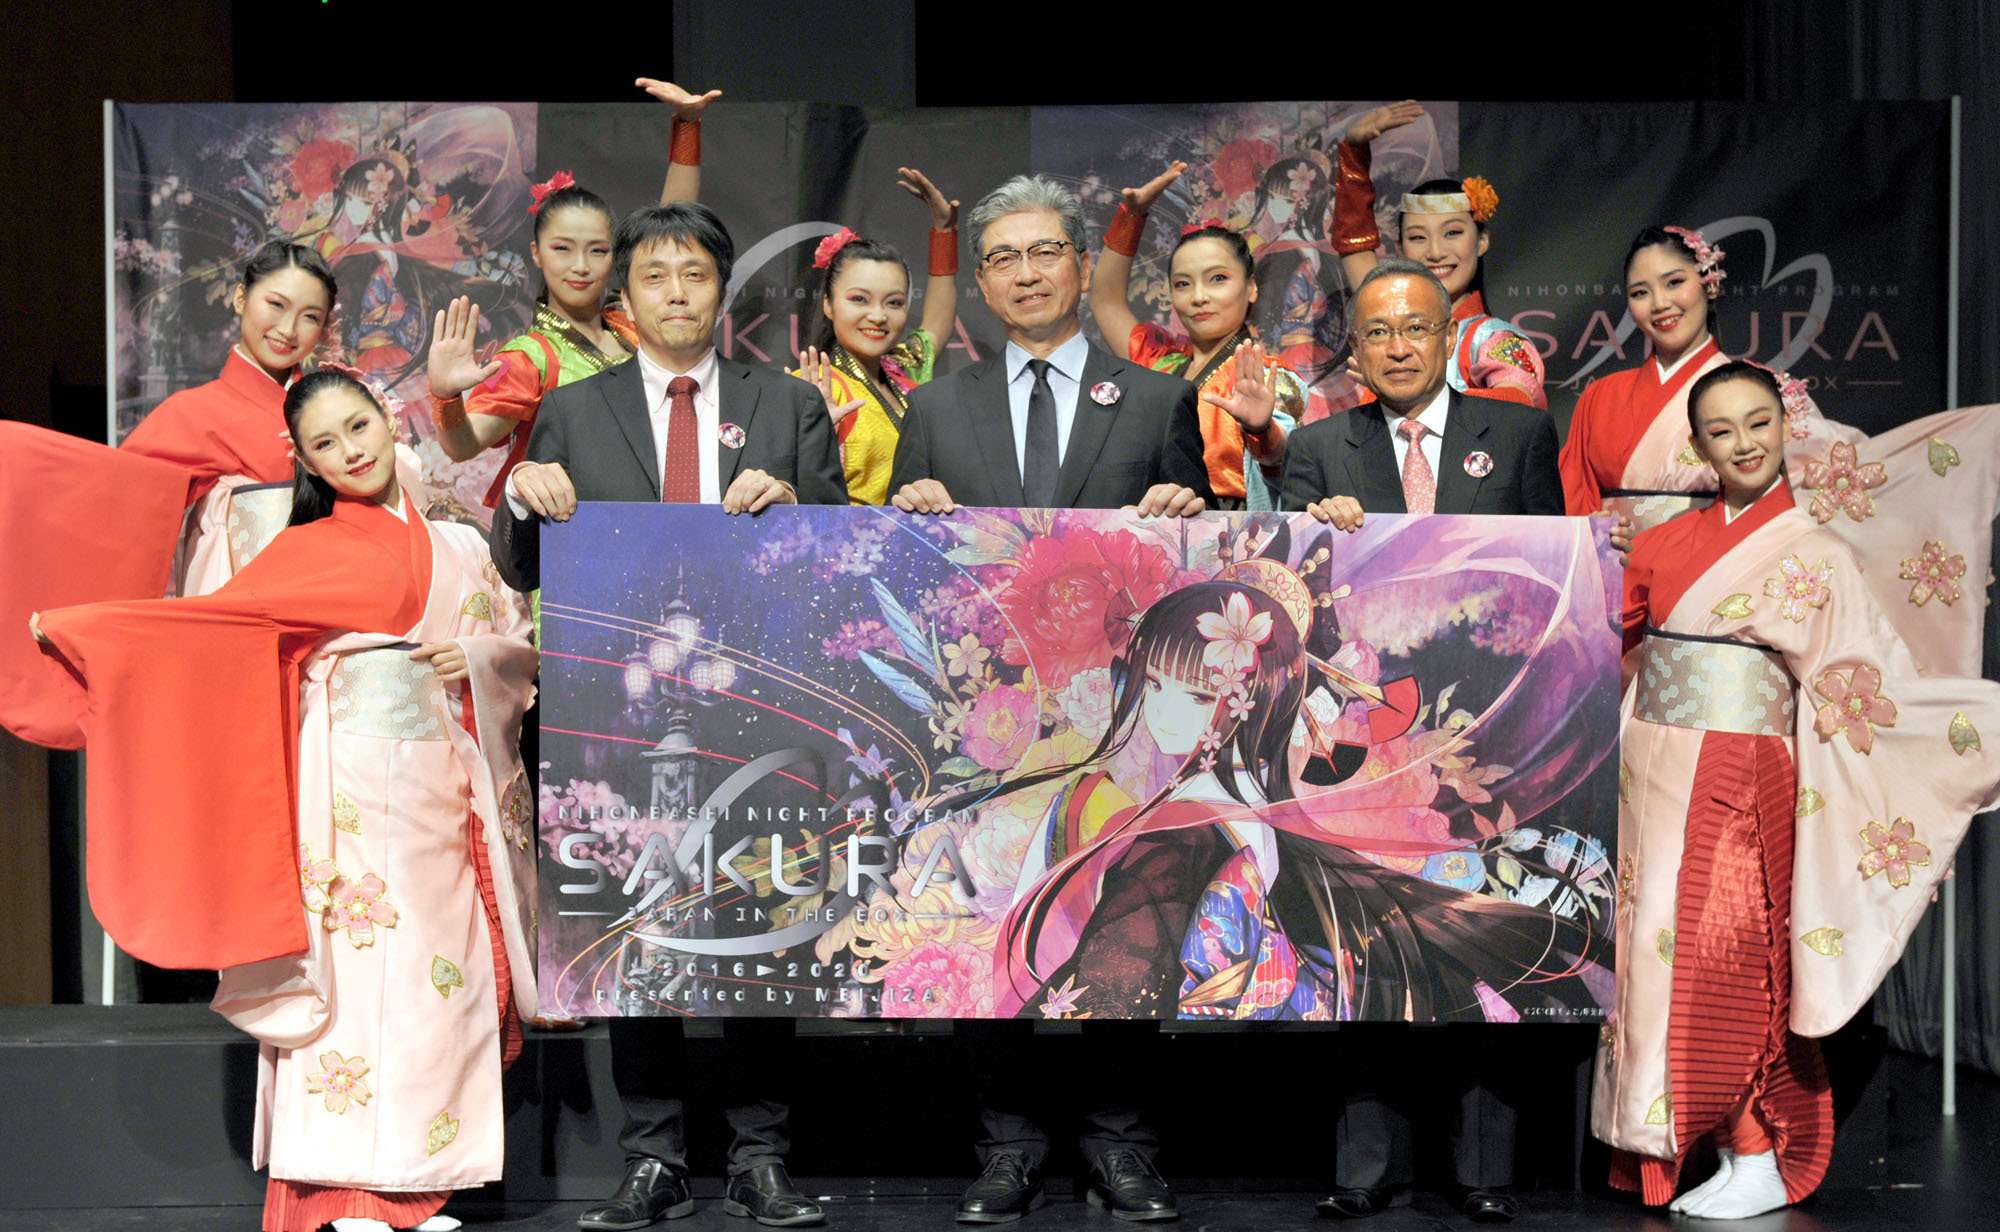 "President of ""Meijiza"" (Theater) Co. Yoshihiro Mita (center) poses with E Plus Deputy CEO Naoya Kurami (left), Mitsui Fudosan Co. Nihonbashi Urban Planning Development Department General Manager Takayasu Ueda (right) and performers at a press conference and preview announcing the Sept. 7 debut of the ""SAKURA -JAPAN IN THE BOX-"" evening theater program by Meijiza (Theater) Co. at Meijiza, Nihonbashi Hamacho in Tokyo on June 20. 